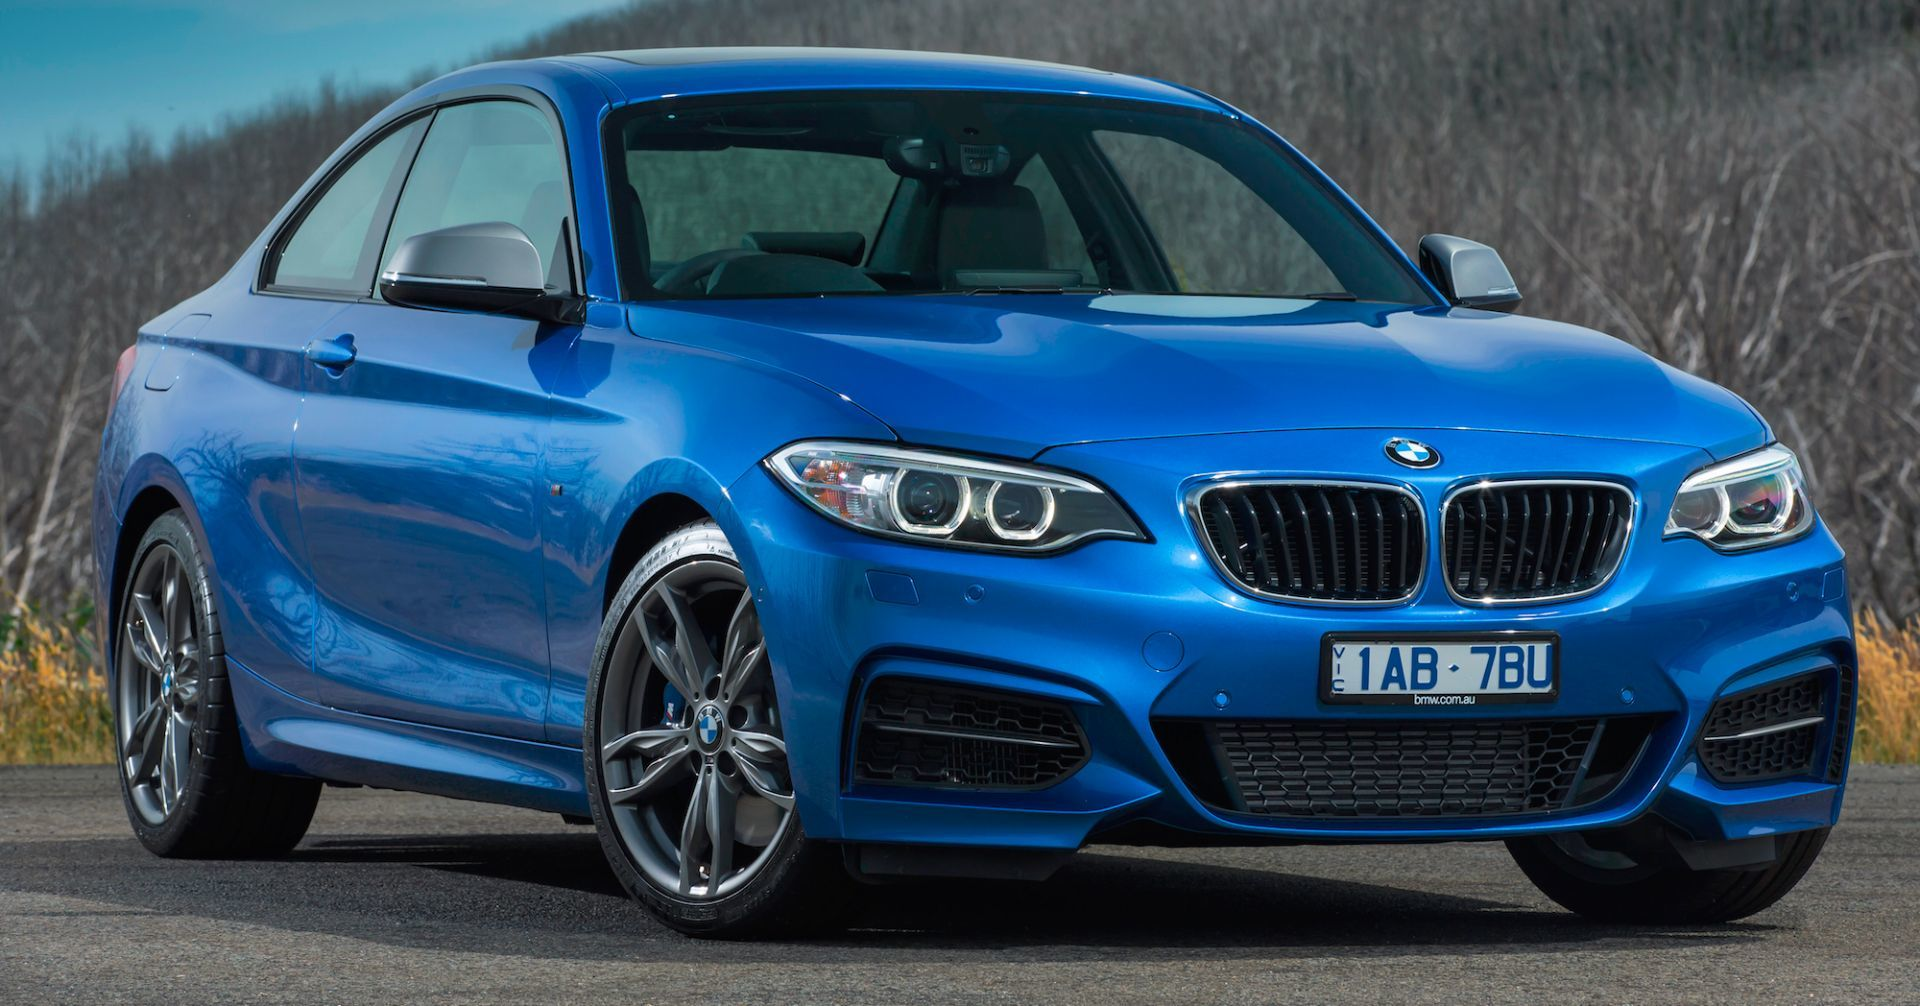 2016 Bmw 2 Series The Bmw That Does It All Elite Bmw